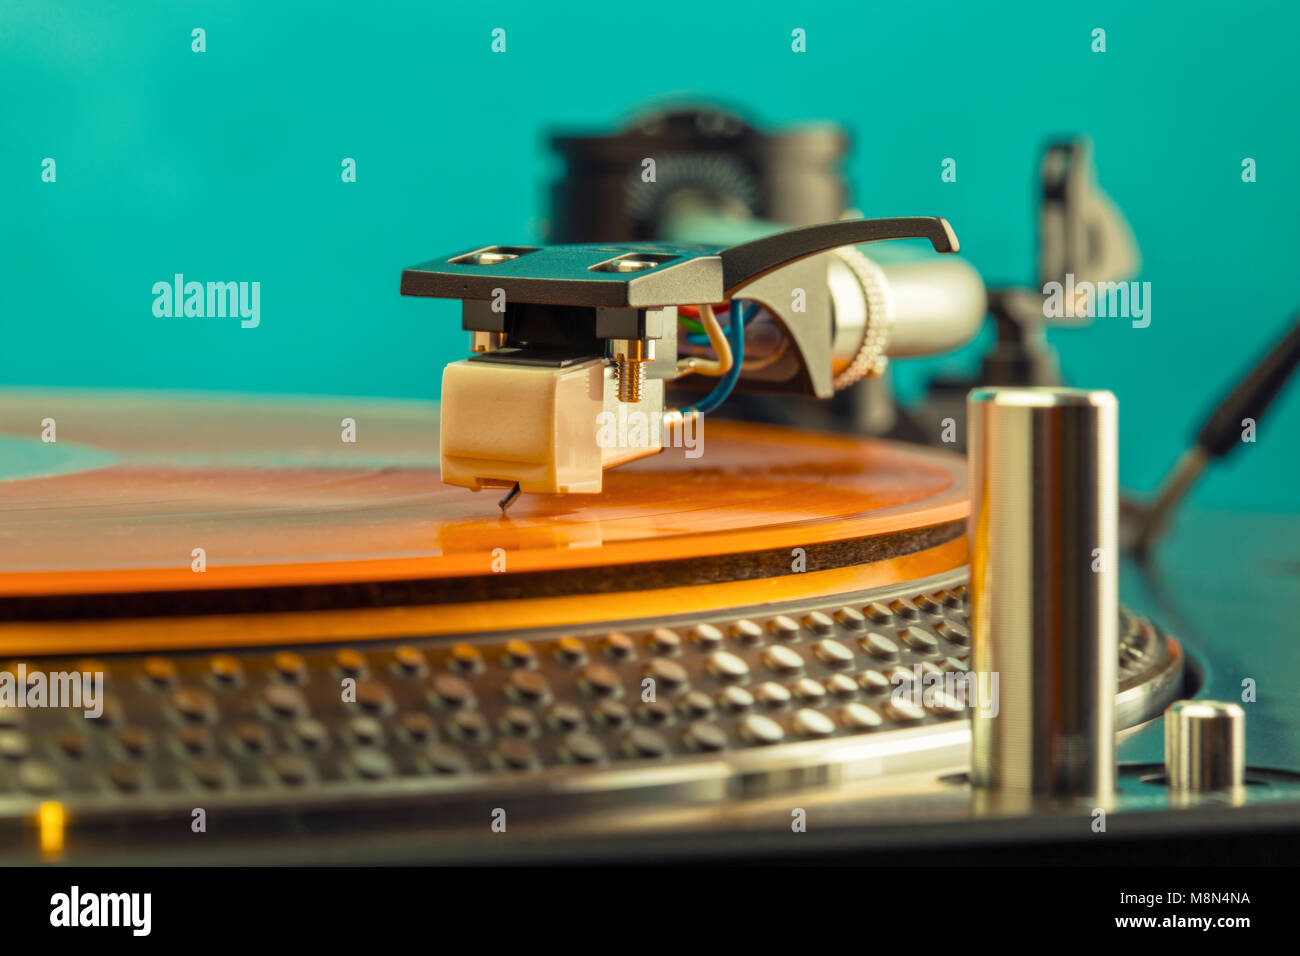 Closeup of turntable needle on spinning orange colored vinyl record - Stock Image